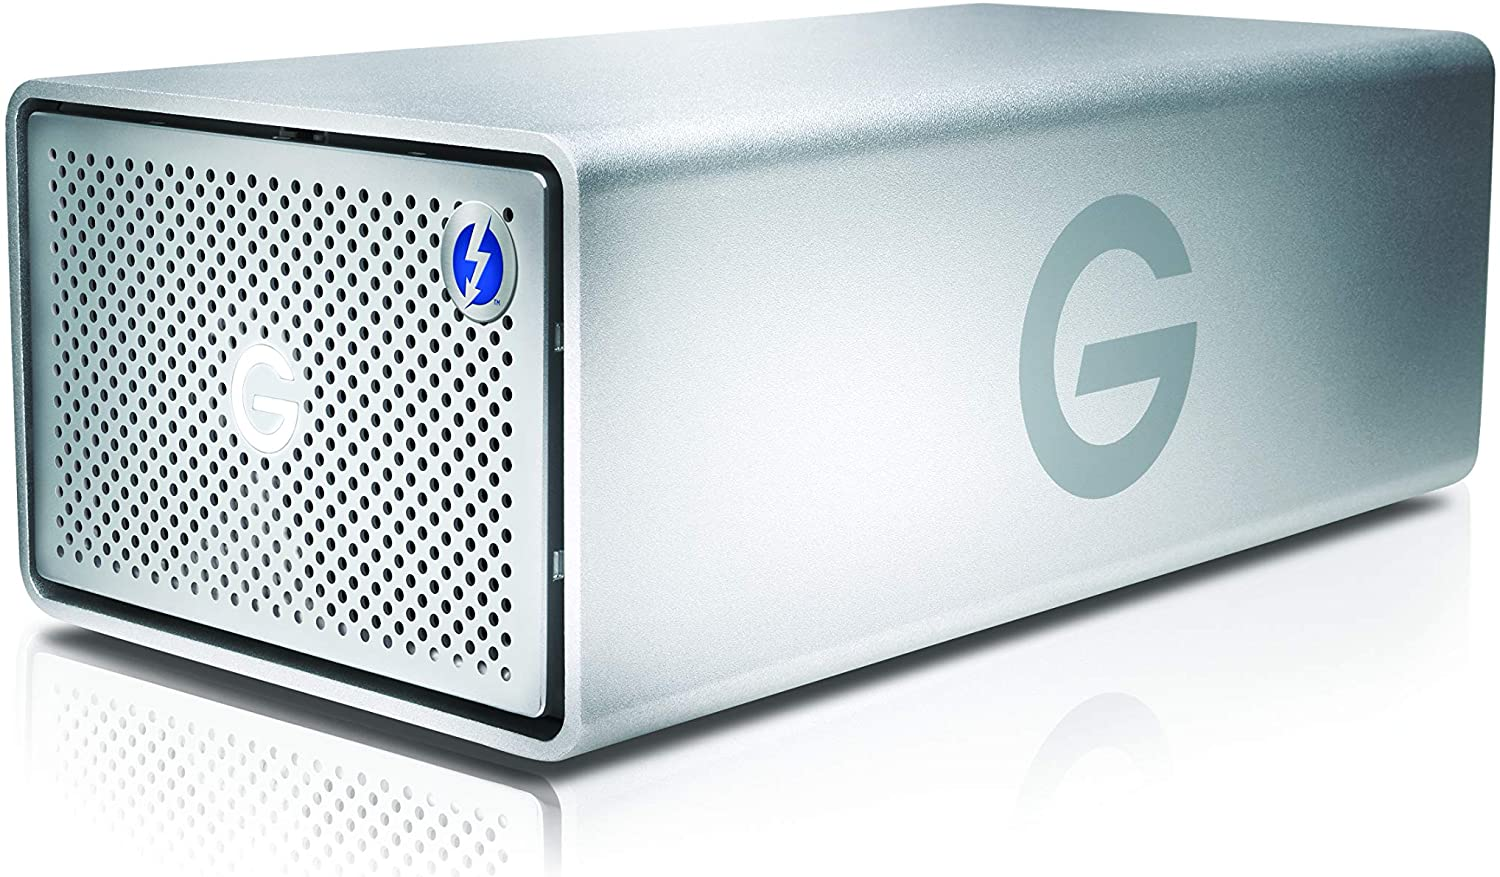 G-Technology 12TB G-RAID with Thunderbolt 3, USB-C (USB 3.1 Gen 2), and HDMI, Removable Dual Drive Storage System, Silver - 0G05753-1